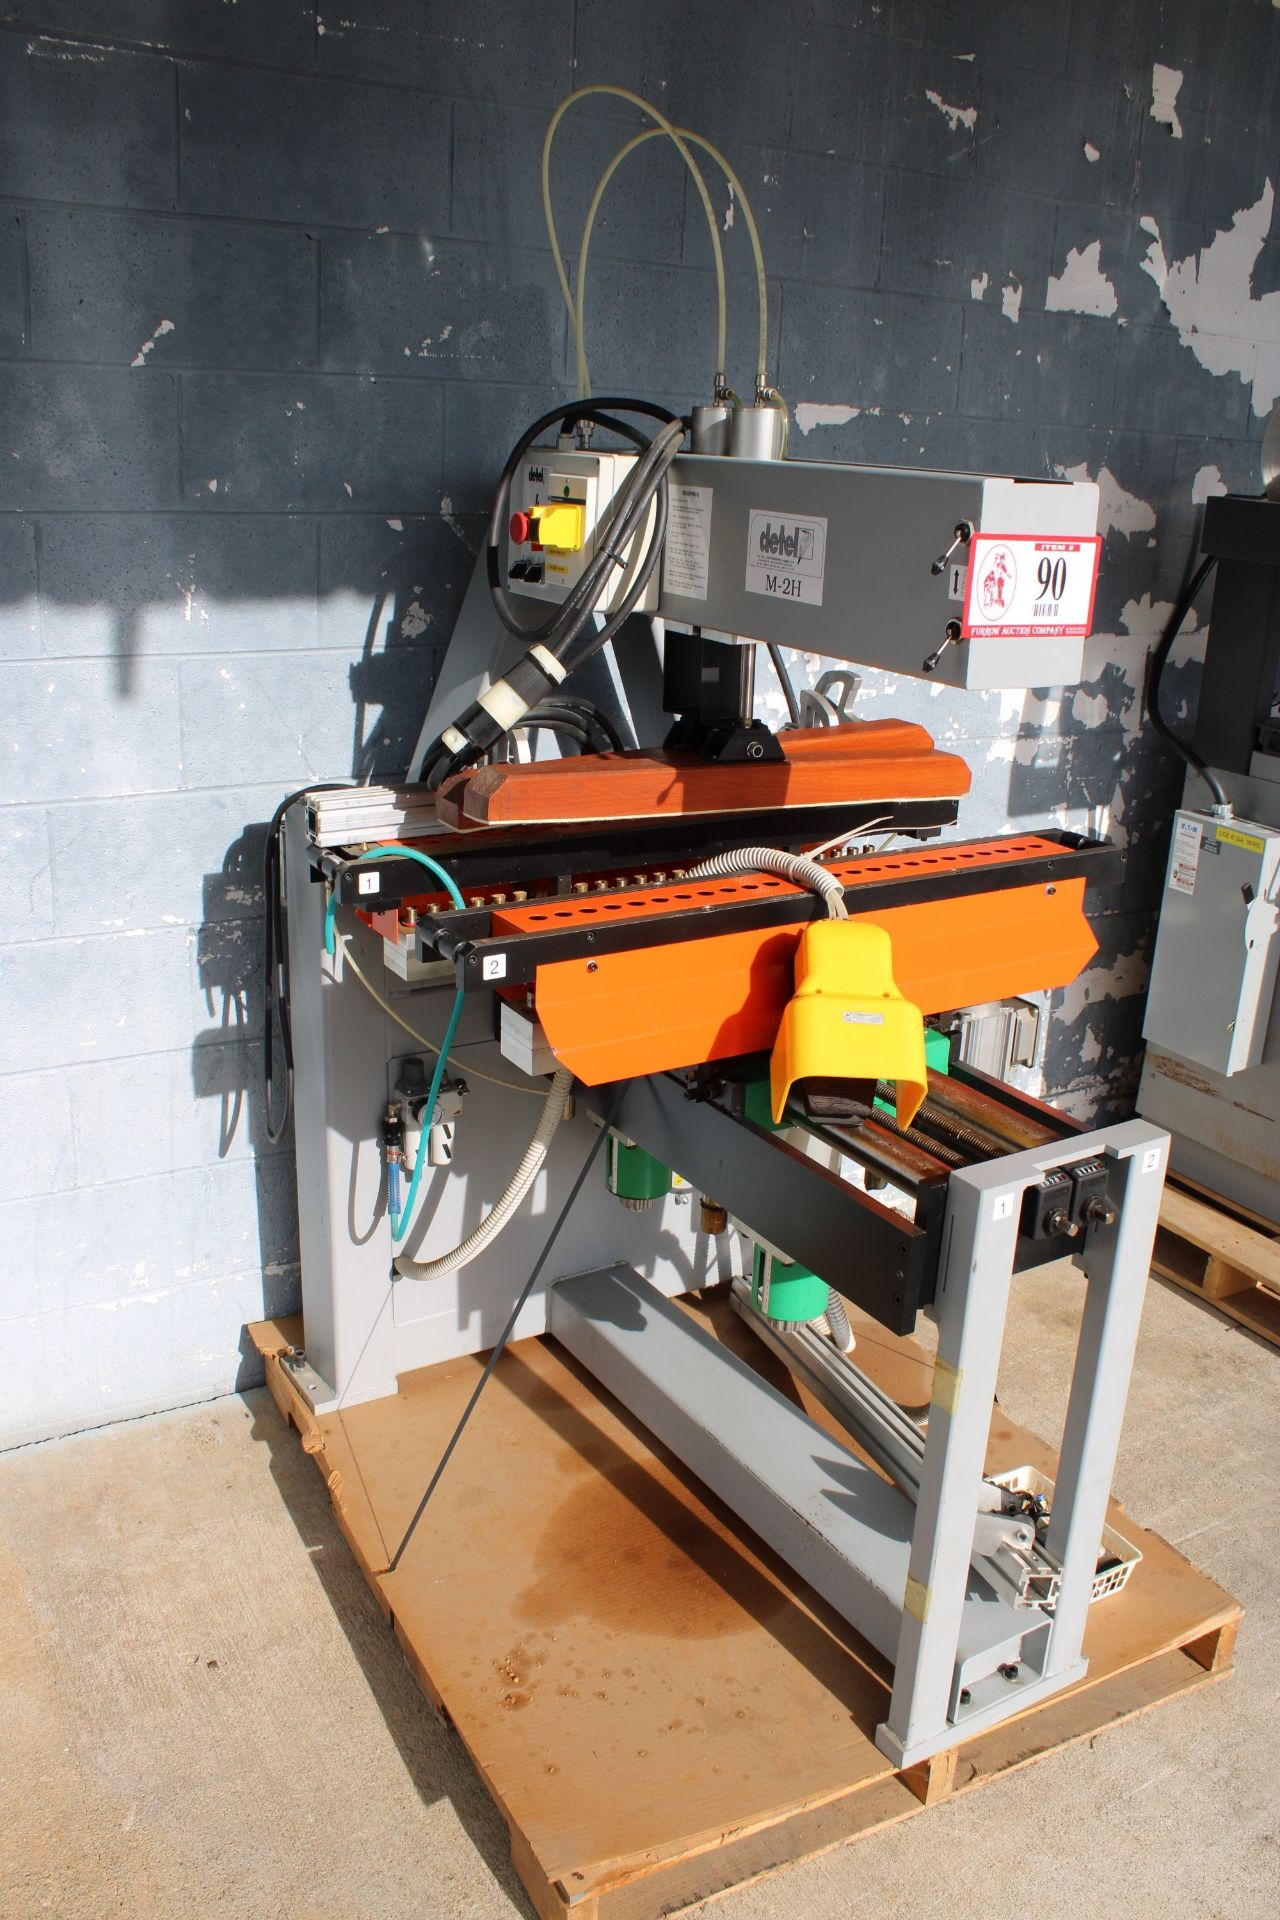 Adwood Detel M-2H-M 35 Double Boring Machine Press, 230v 3 Phase, Purchased New and Used Less Than - Image 2 of 2